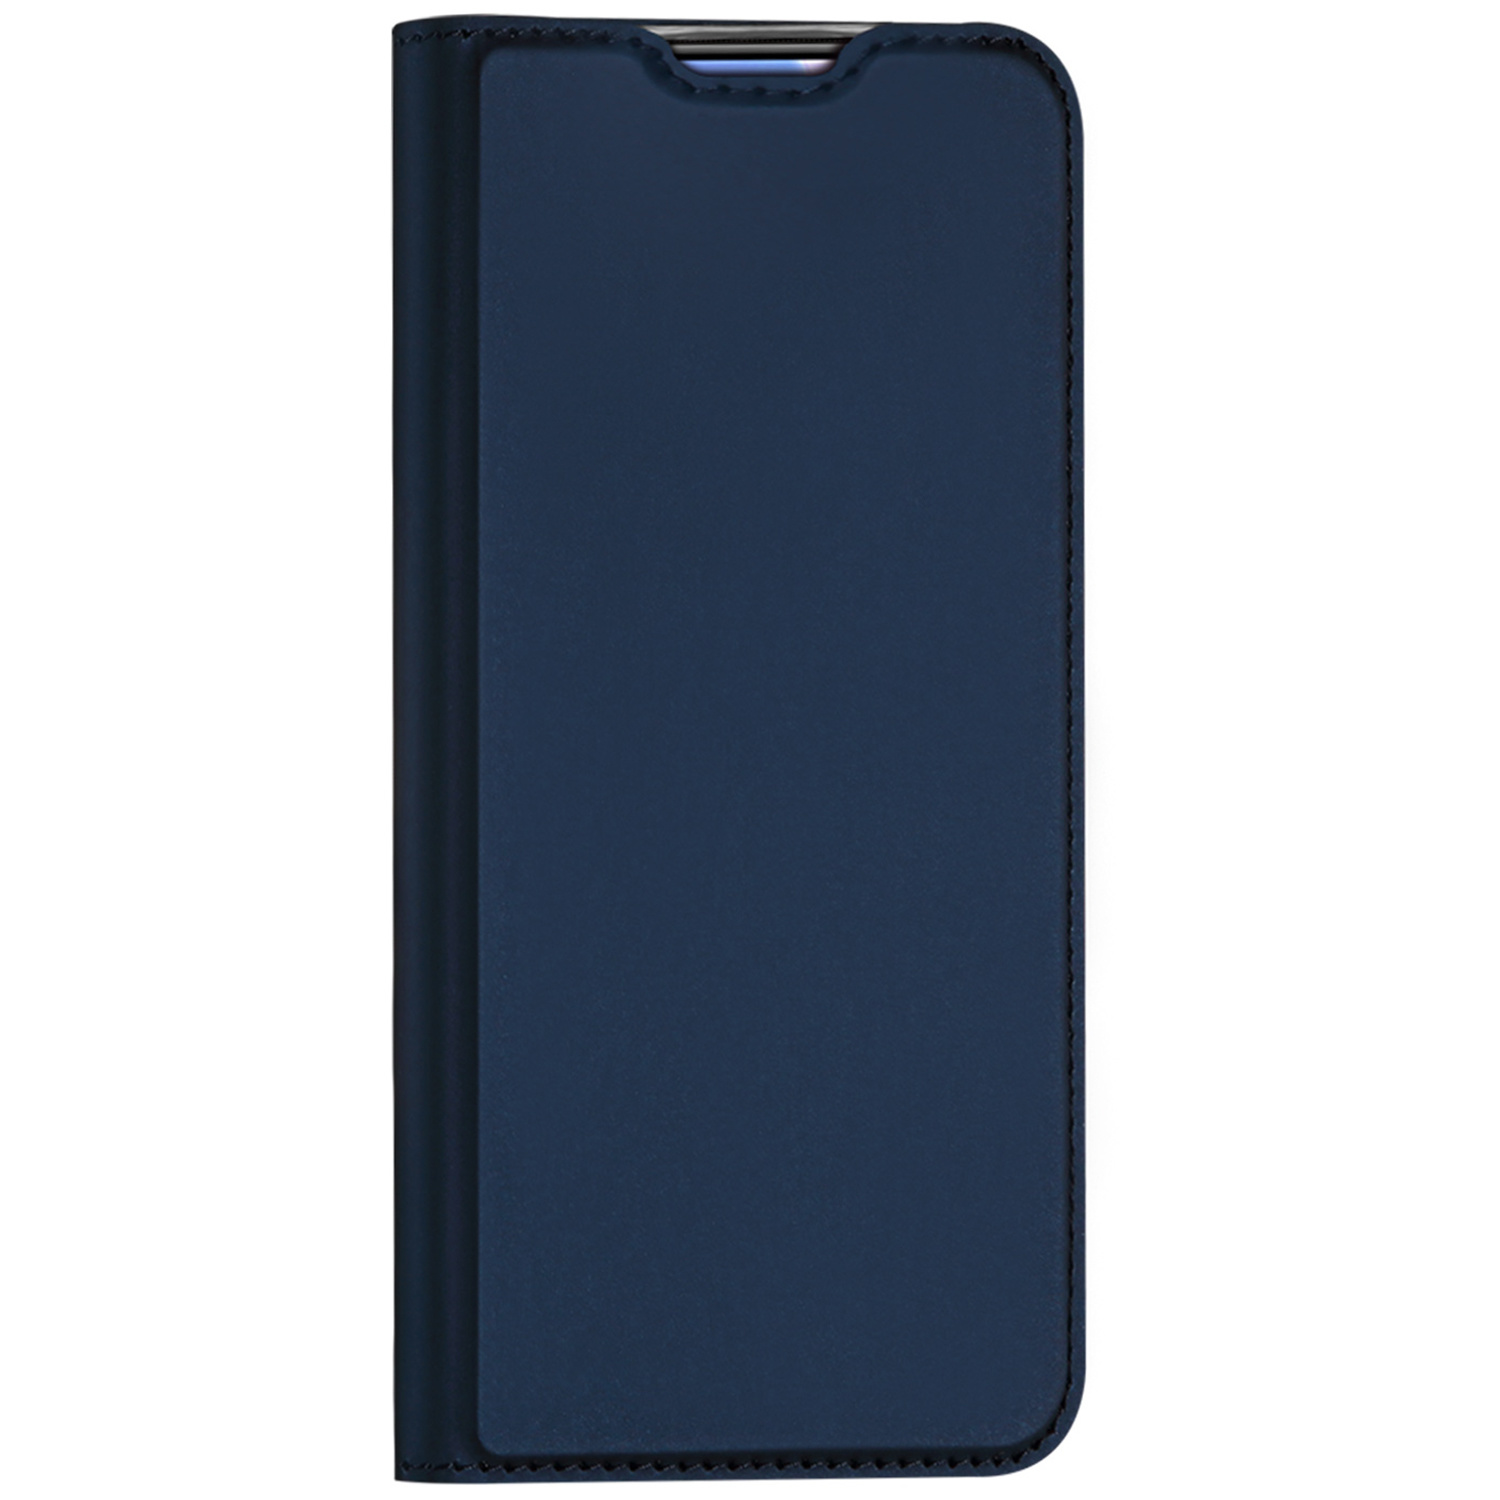 Dux Ducis Slim Softcase Booktype Oppo Find X2 Neo - Donkerblauw